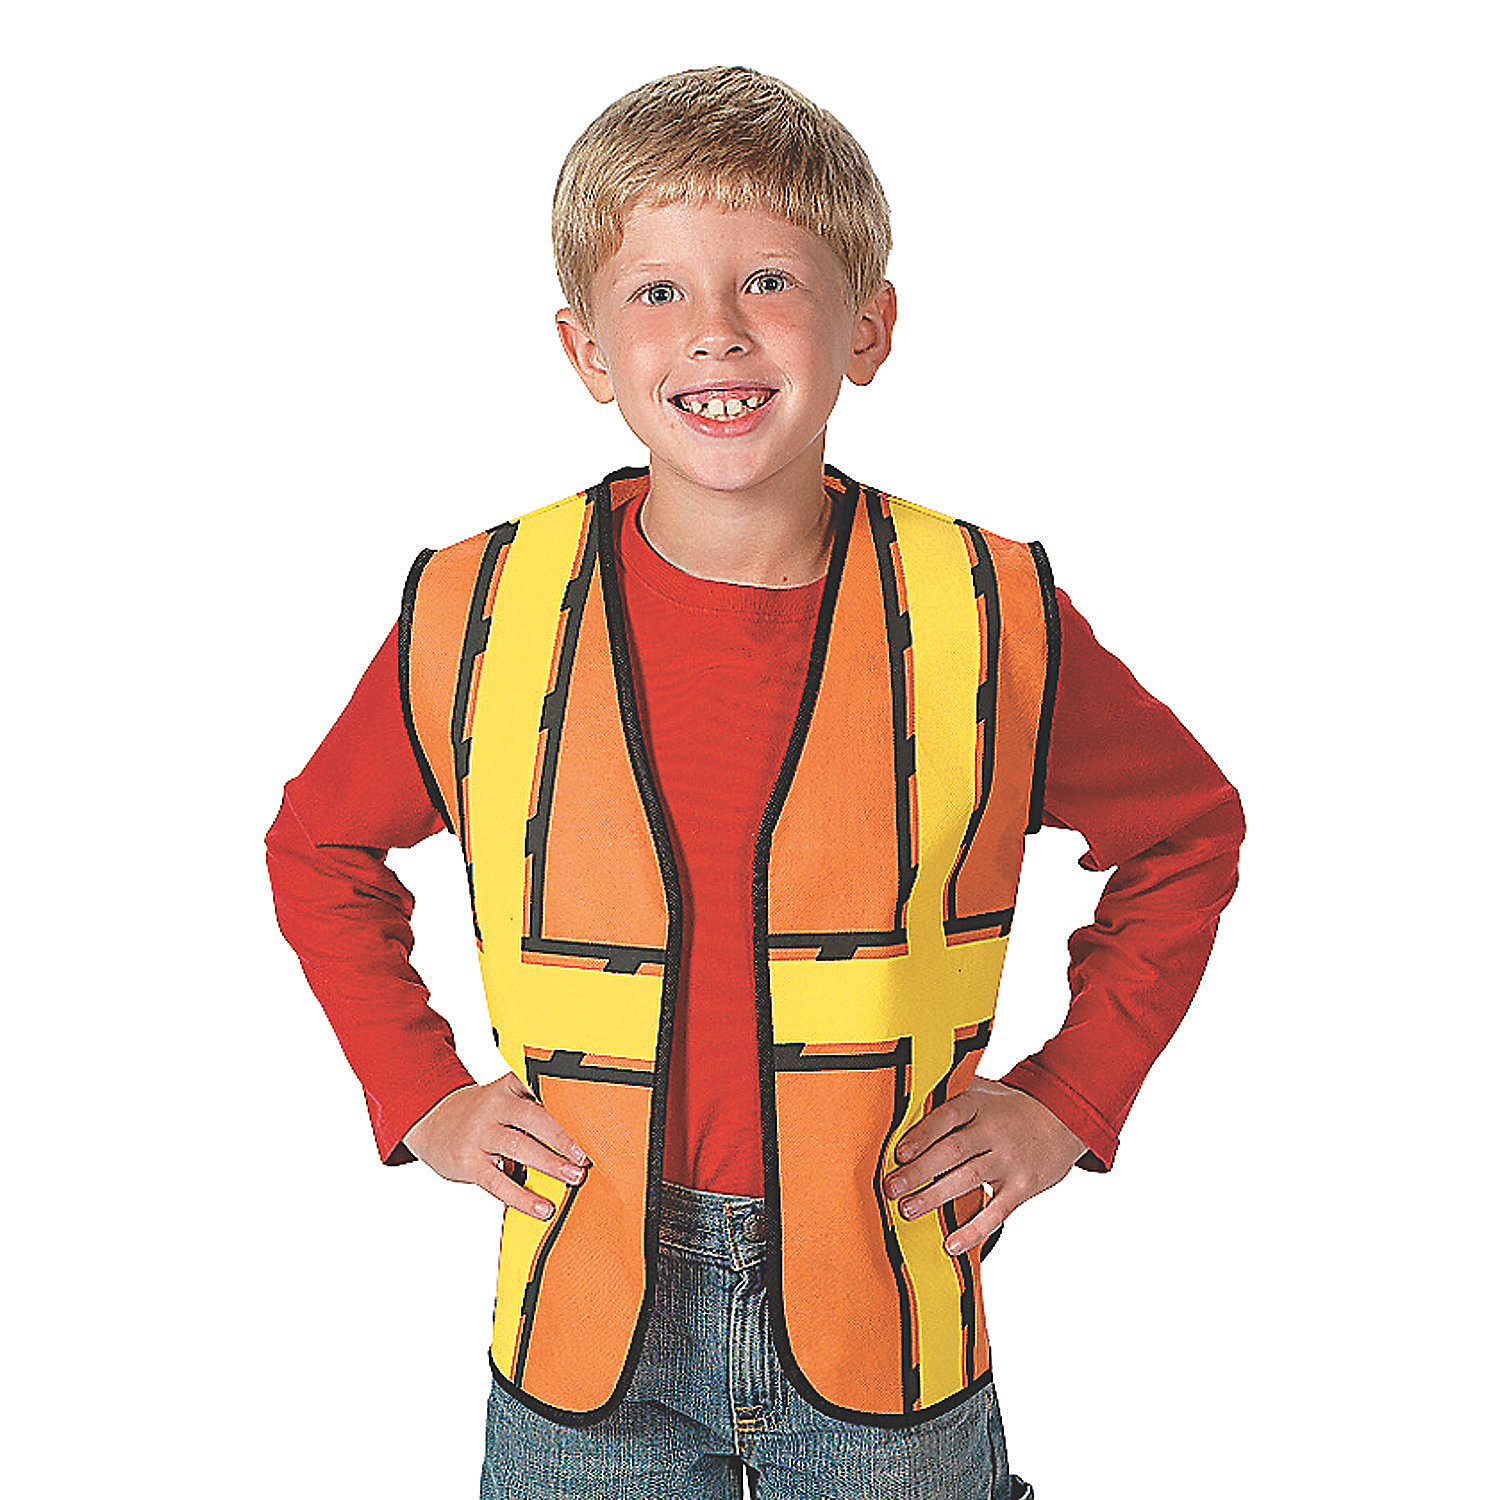 This Dress Up America Boys' Construction Worker Costume is ideal for little ones to wear for Halloween. It comes complete with a shirt, a vest and pants. The pretend play costume has an authentic design, and the vest comes in high-visibility orange with yellow and silver reflective stripes.3/5(1).